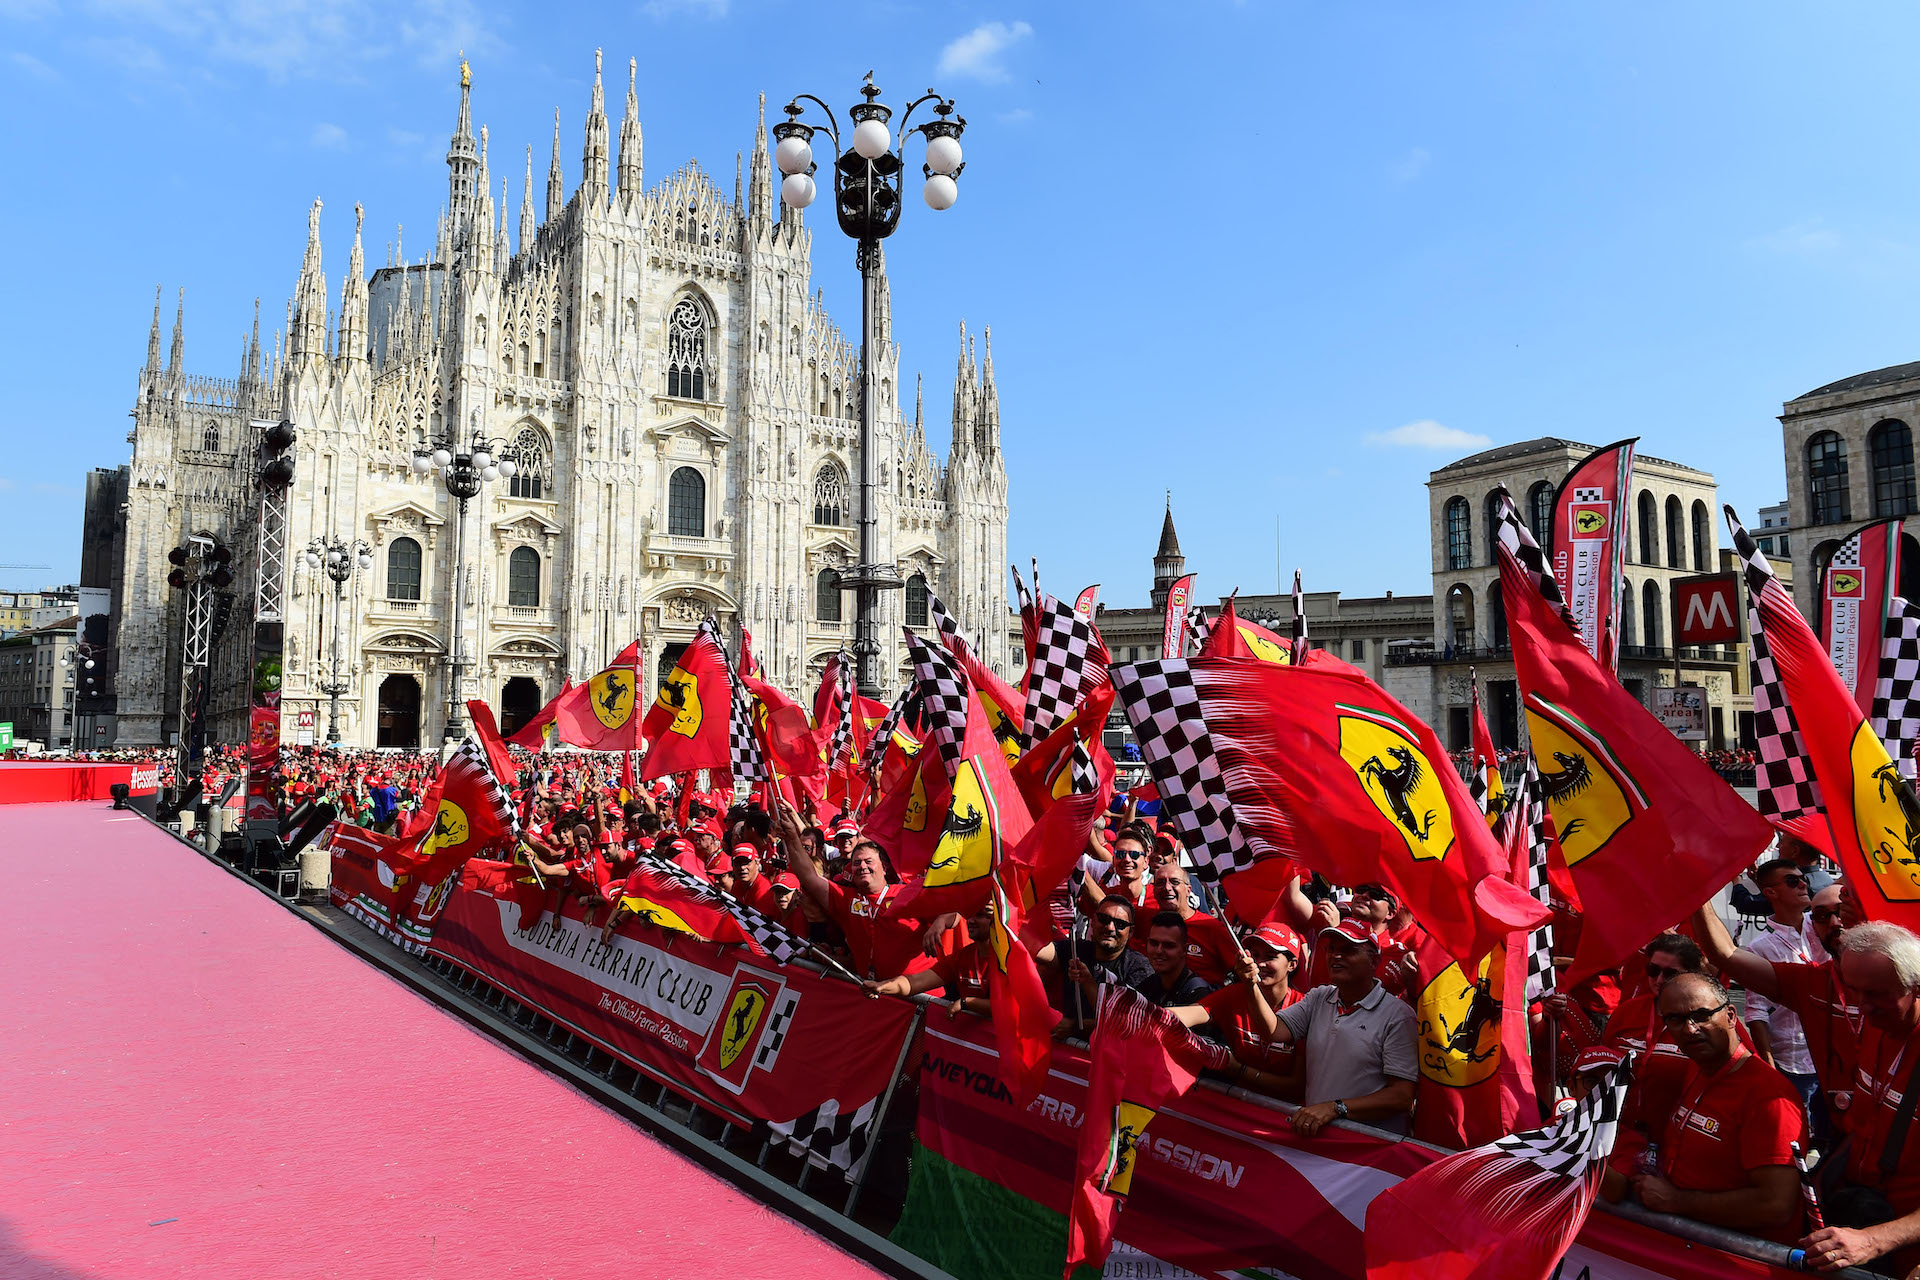 2019 Ferrari 90 Years celebration at Milan | 4 Sept 2019 website 3.jpg